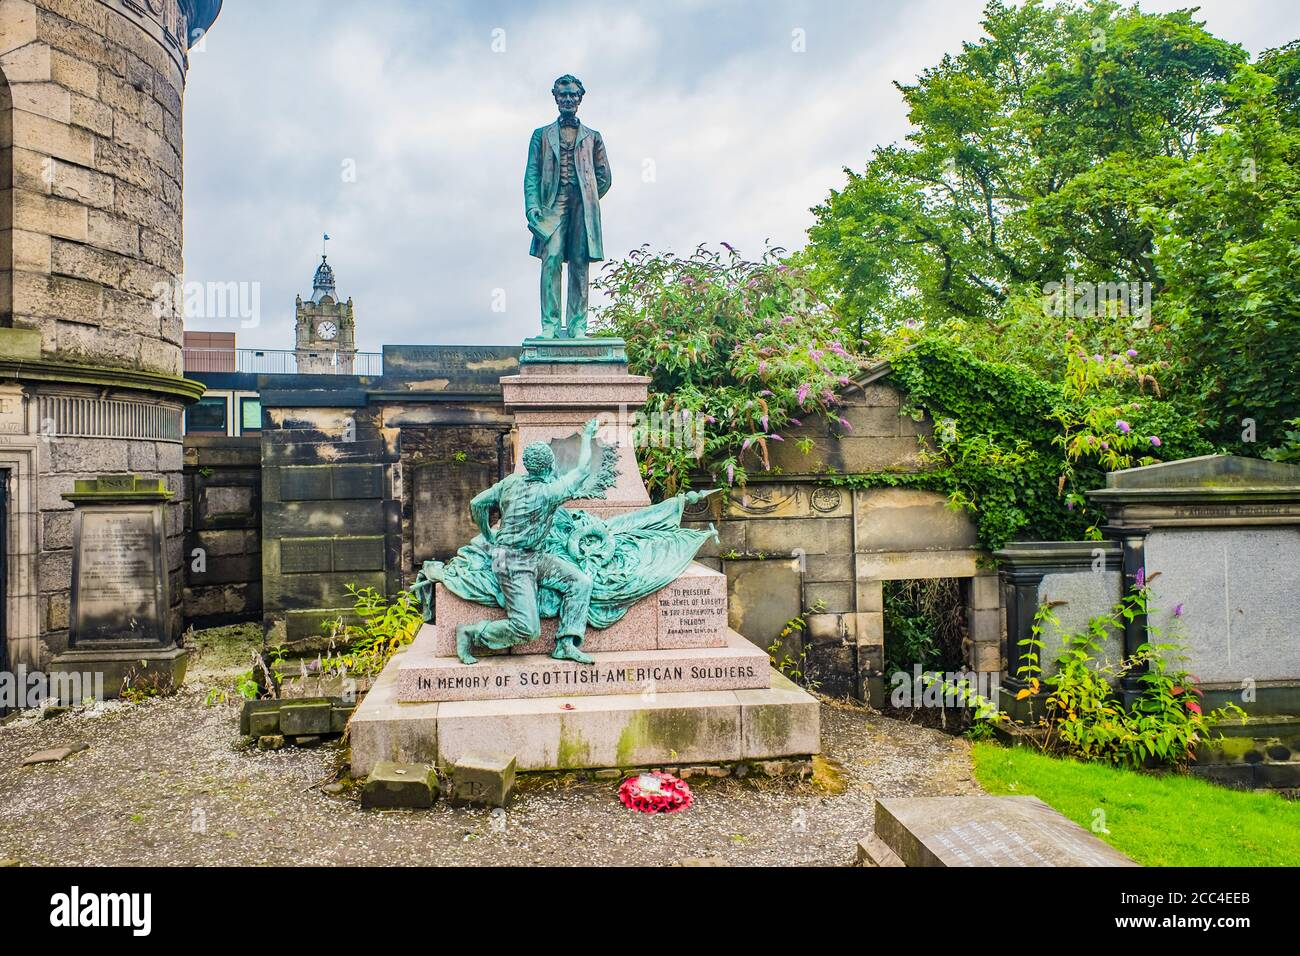 Edinburgh, Scotland 5th August 2020 tombs and gravestomes inThe Old Calton Burial Ground near Calton Hill Stock Photo